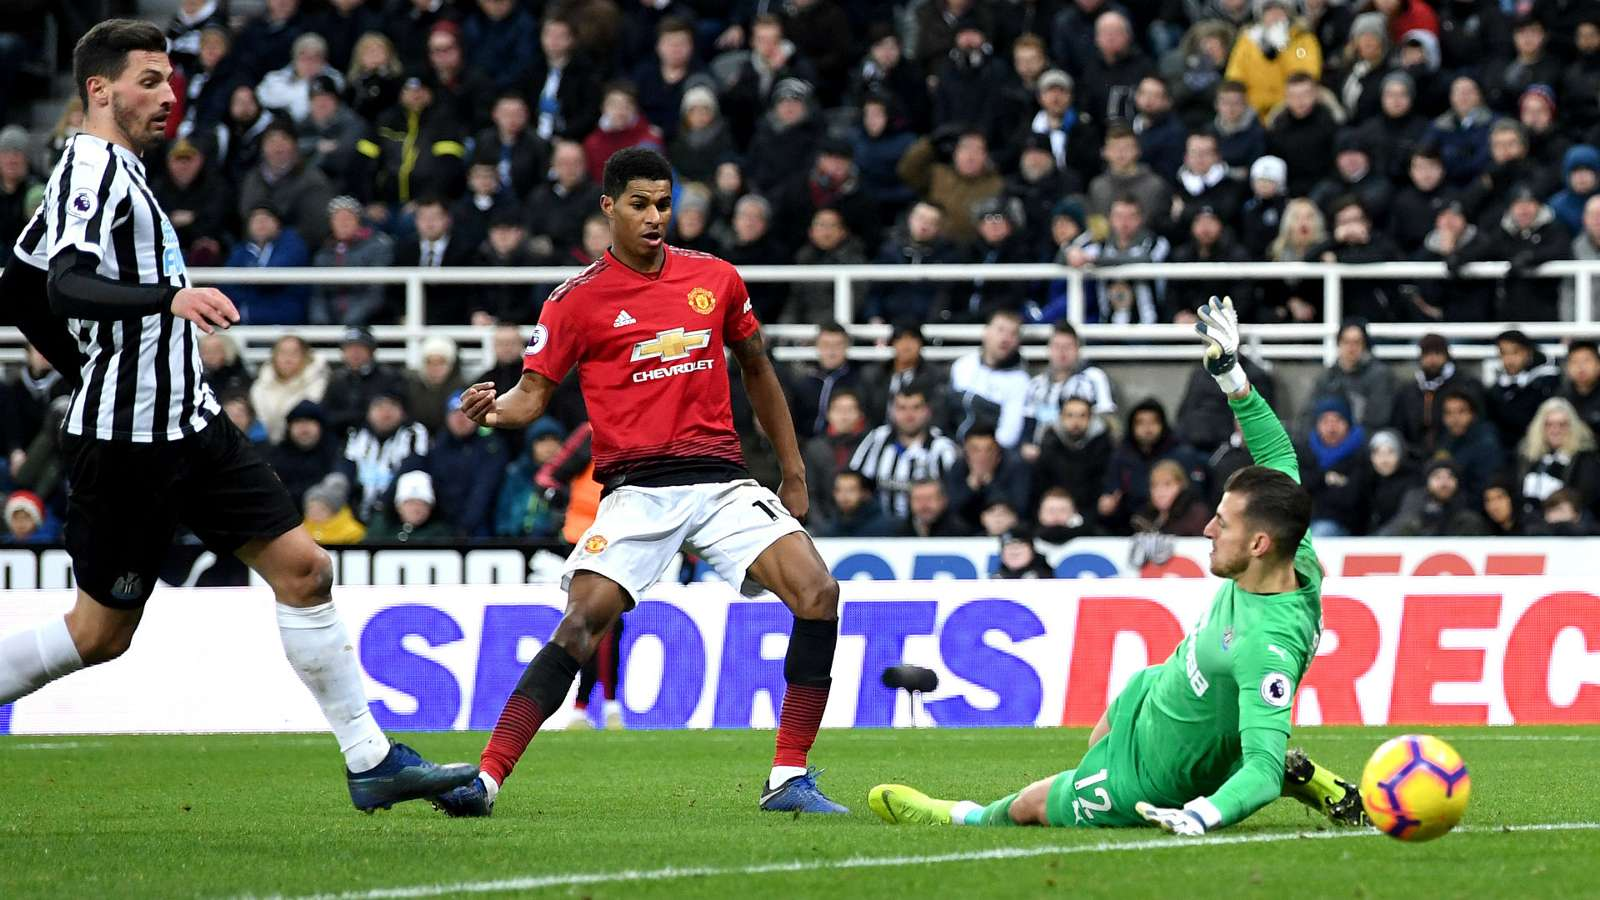 marcusrashford cropped 1smcmbyixzamy1ootl58ciwxtx - Watch: Newcastle United vs Manchester United 0-2: Premier League Highlights [Video]